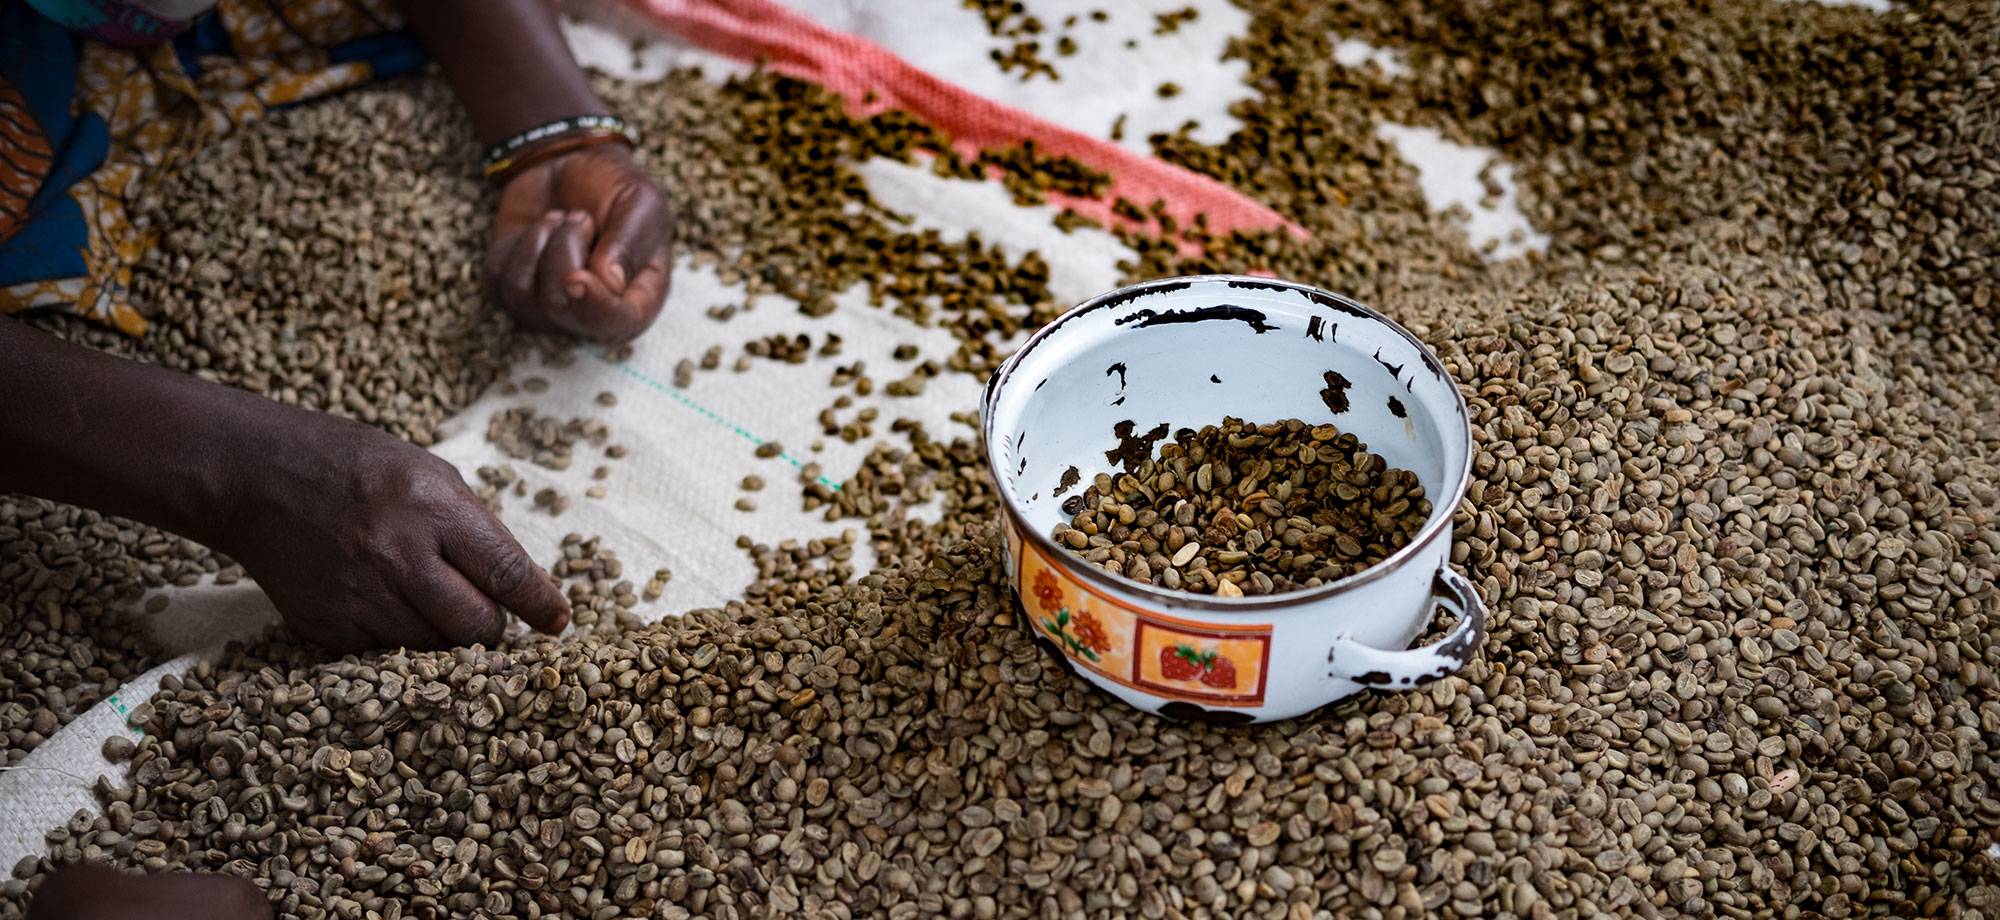 Bolstering livelihoods in Eastern Congo with increased production of specialty coffees